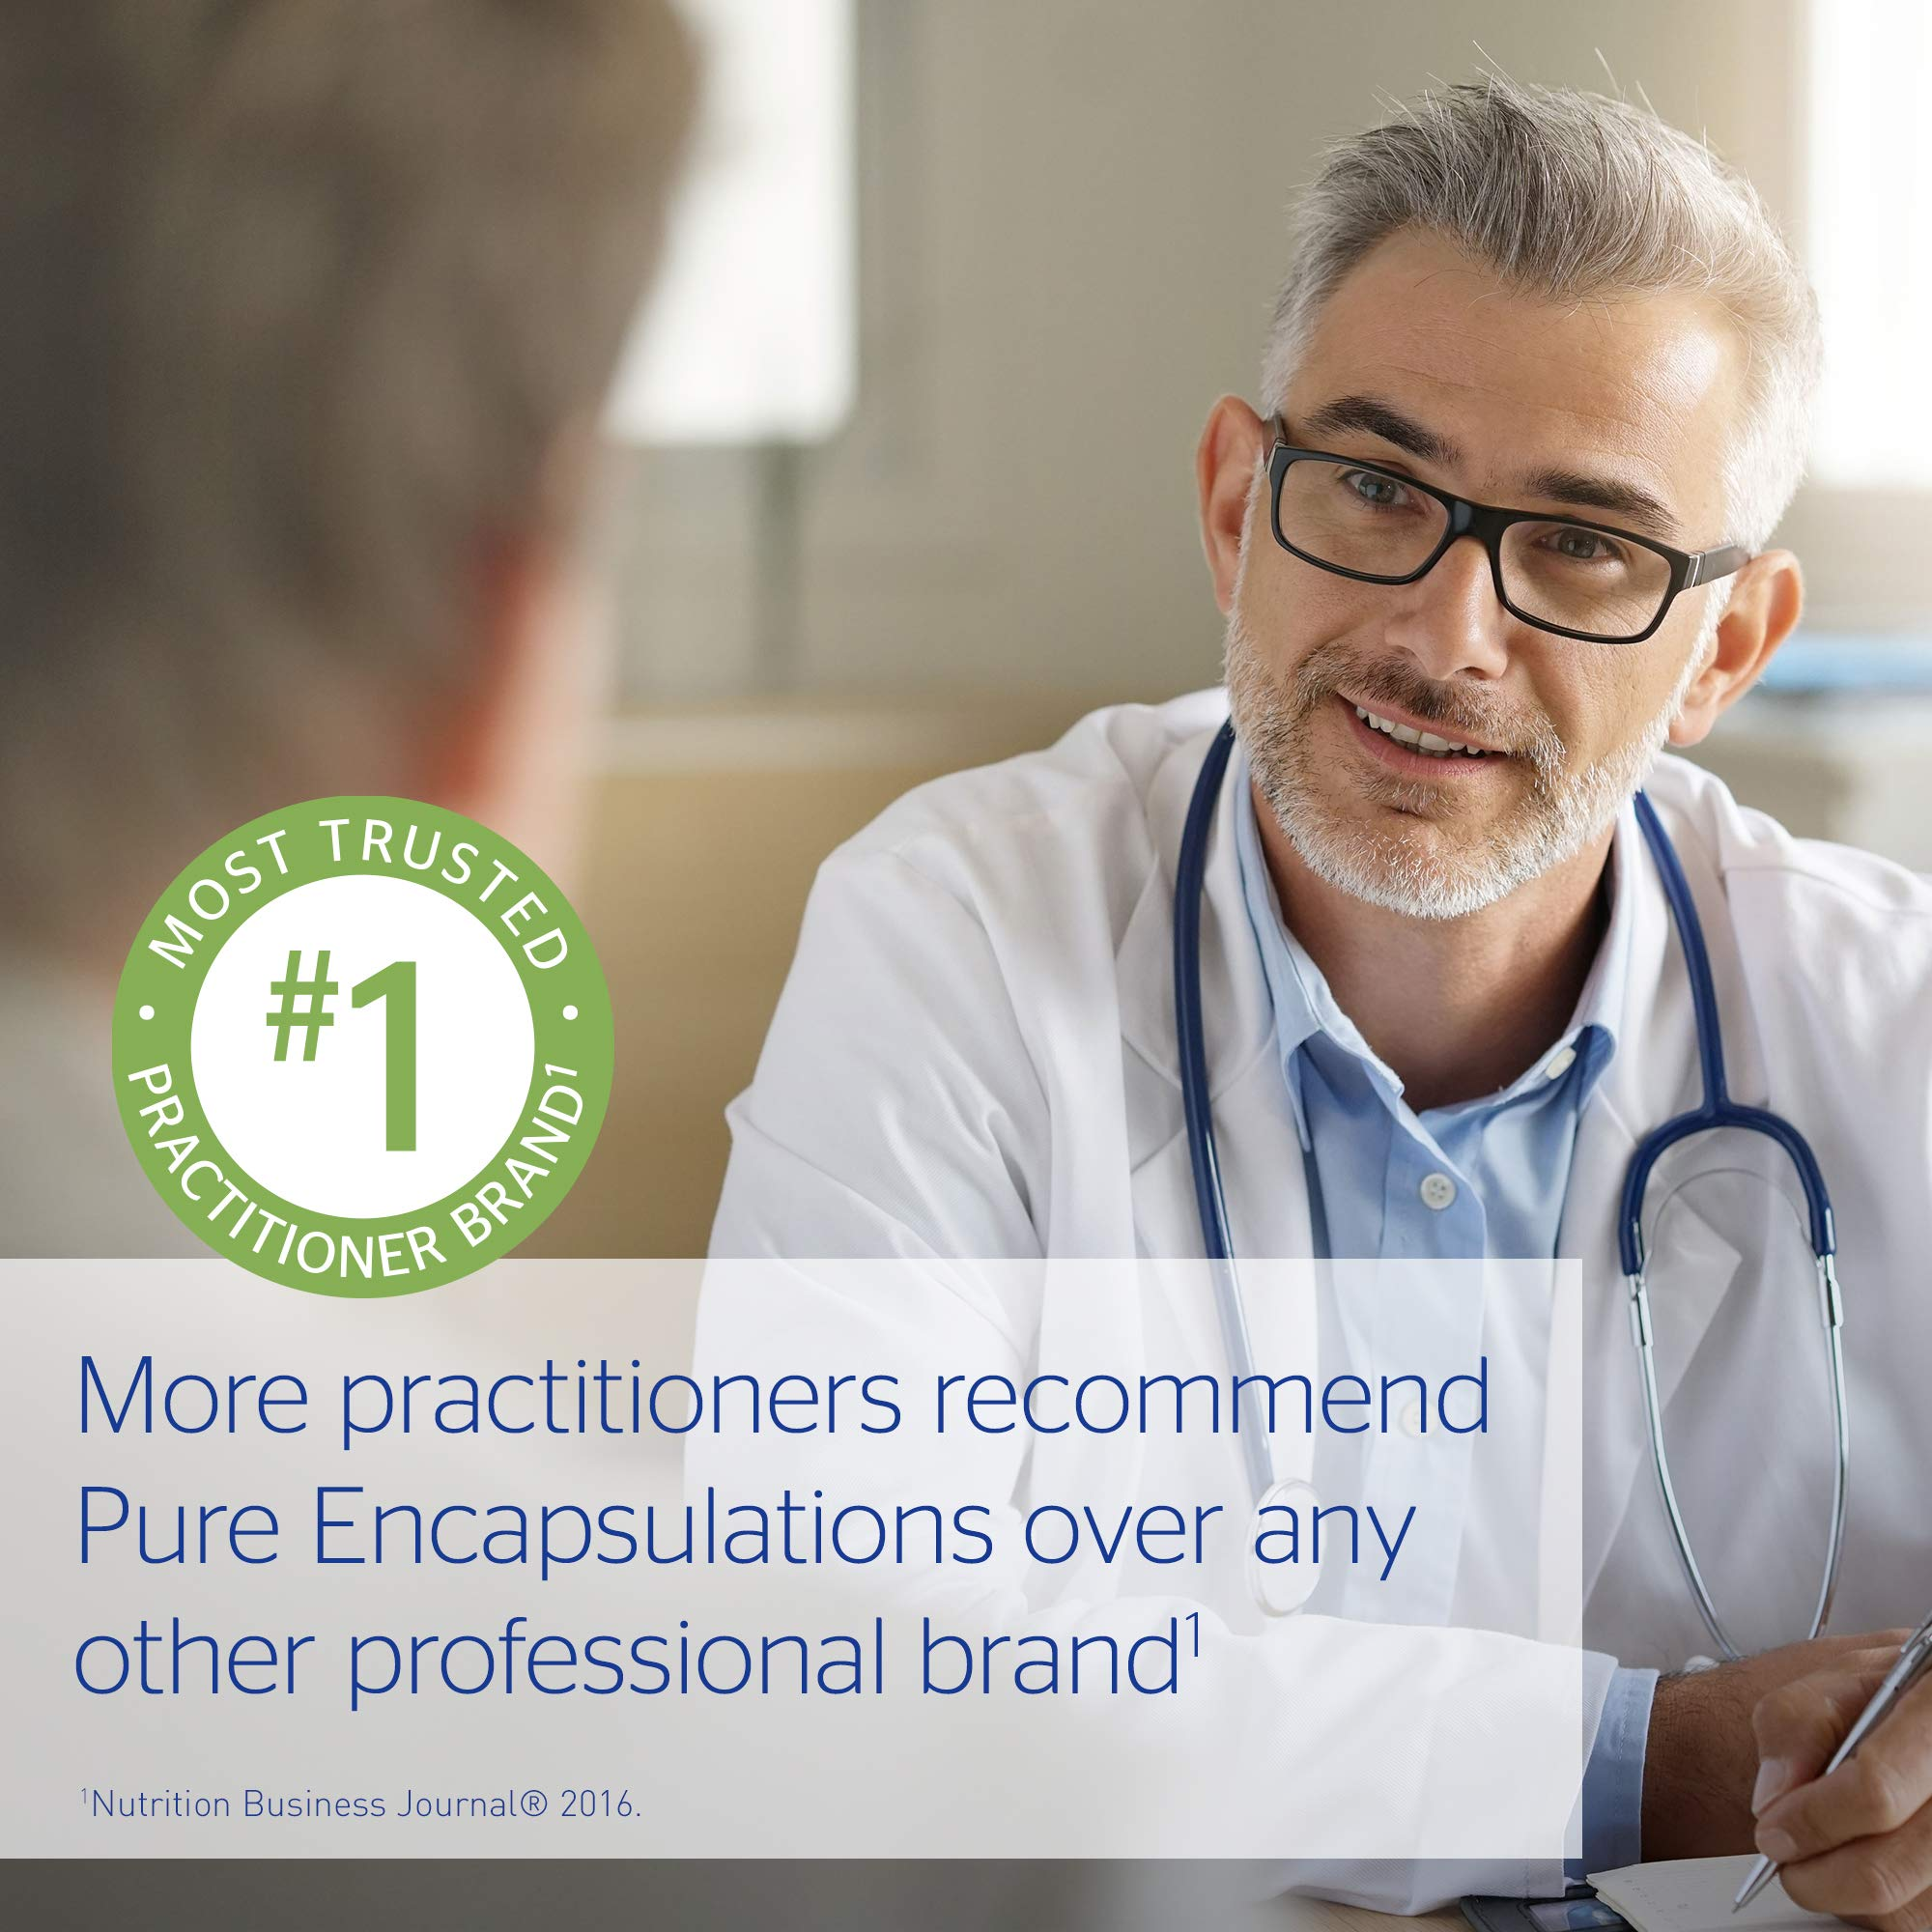 Pure Encapsulations - Cortisol Calm - Hypoallergenic Supplement to Maintain Healthy Cortisol Levels* - 120 Capsules by Pure Encapsulations (Image #6)